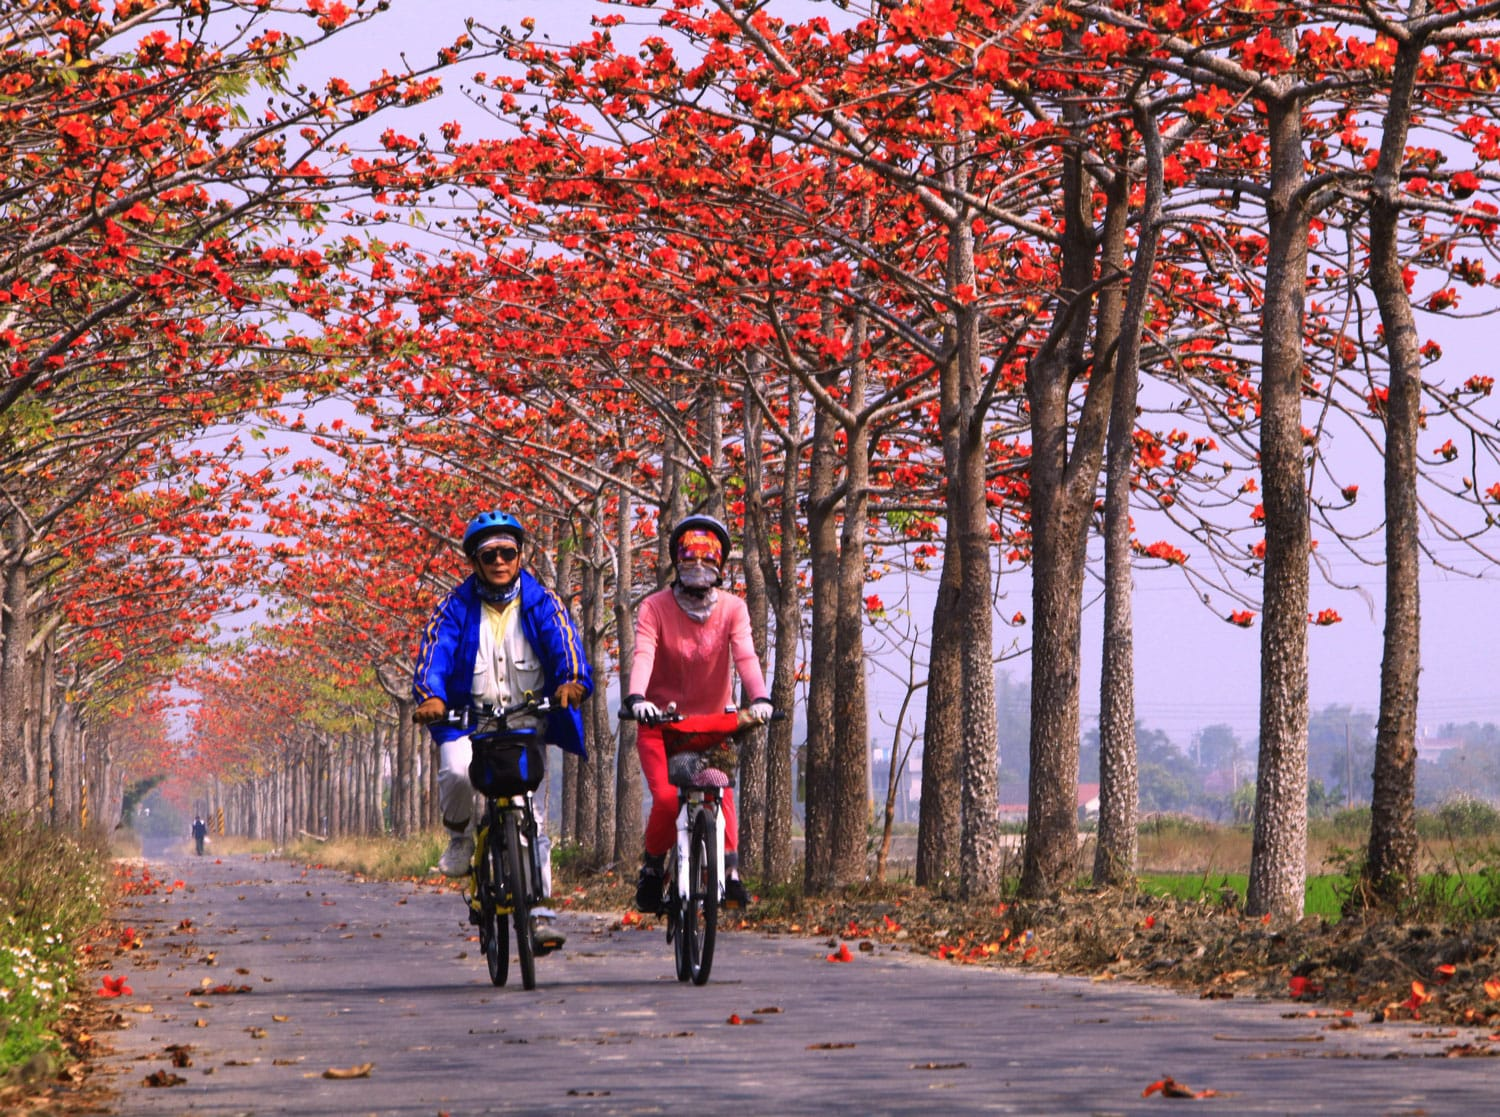 Cycling on the Baihe Cotton Tree Path in Taiwan